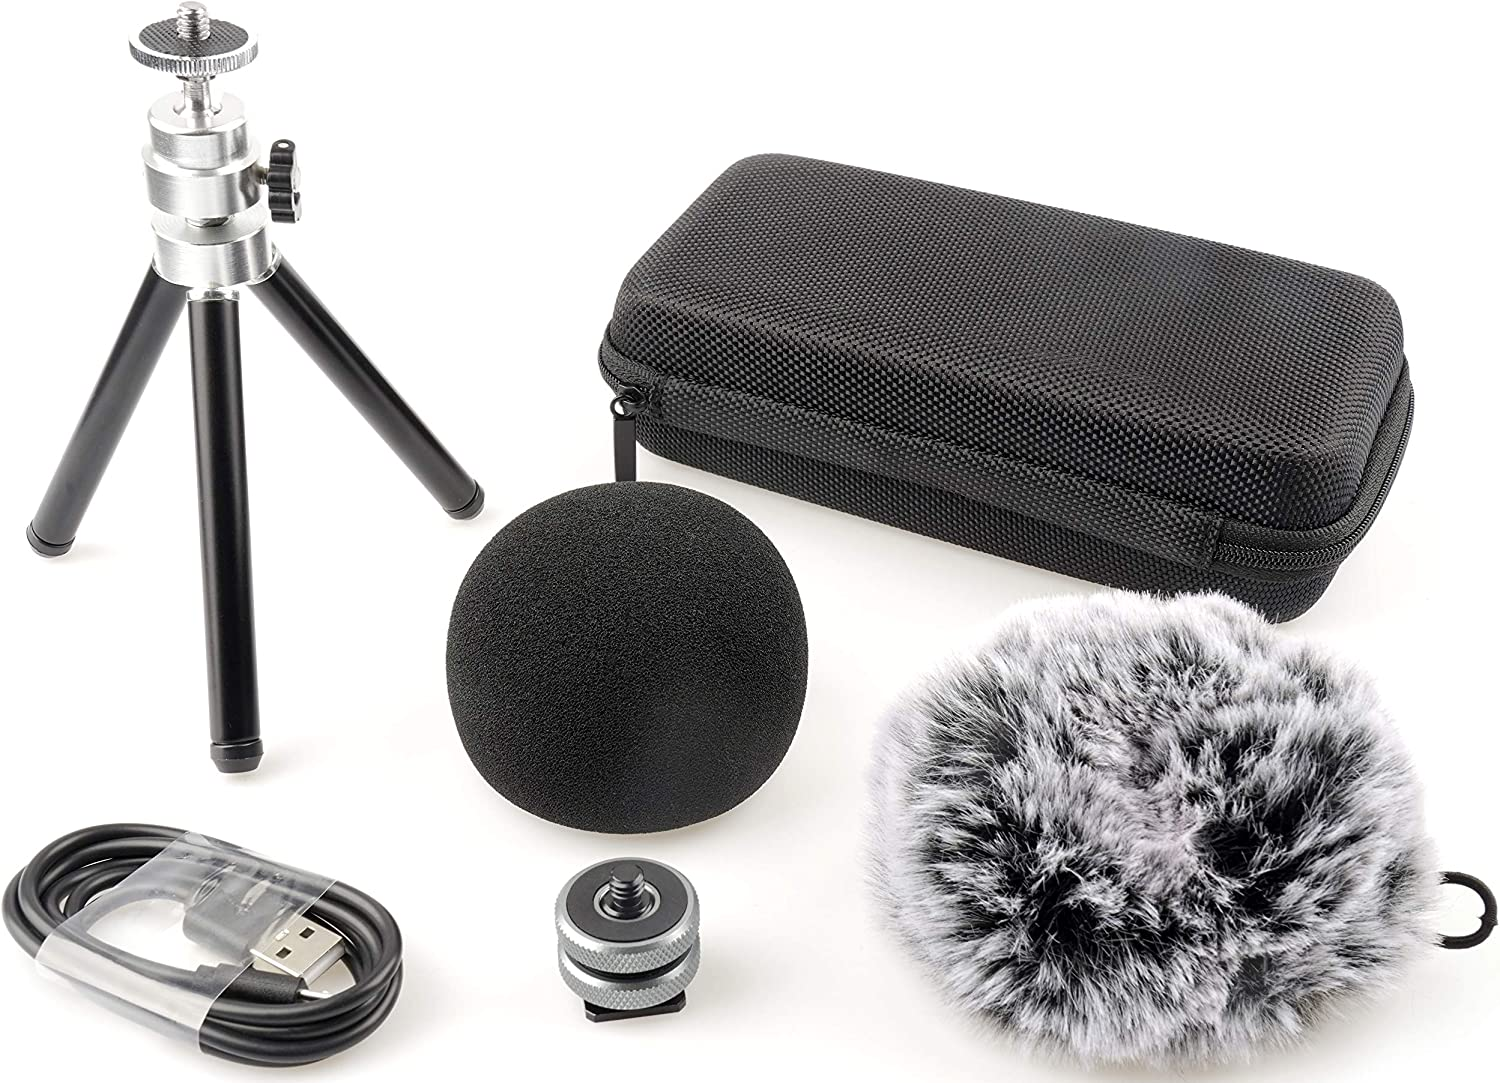 Hotshoe Mount Includes Windscreen Smangto MP-1N Accessory Pack for Zoom H1N TASCAM DR-05X Portable Recorder Micro USB Cable Tripod Case Deadcat